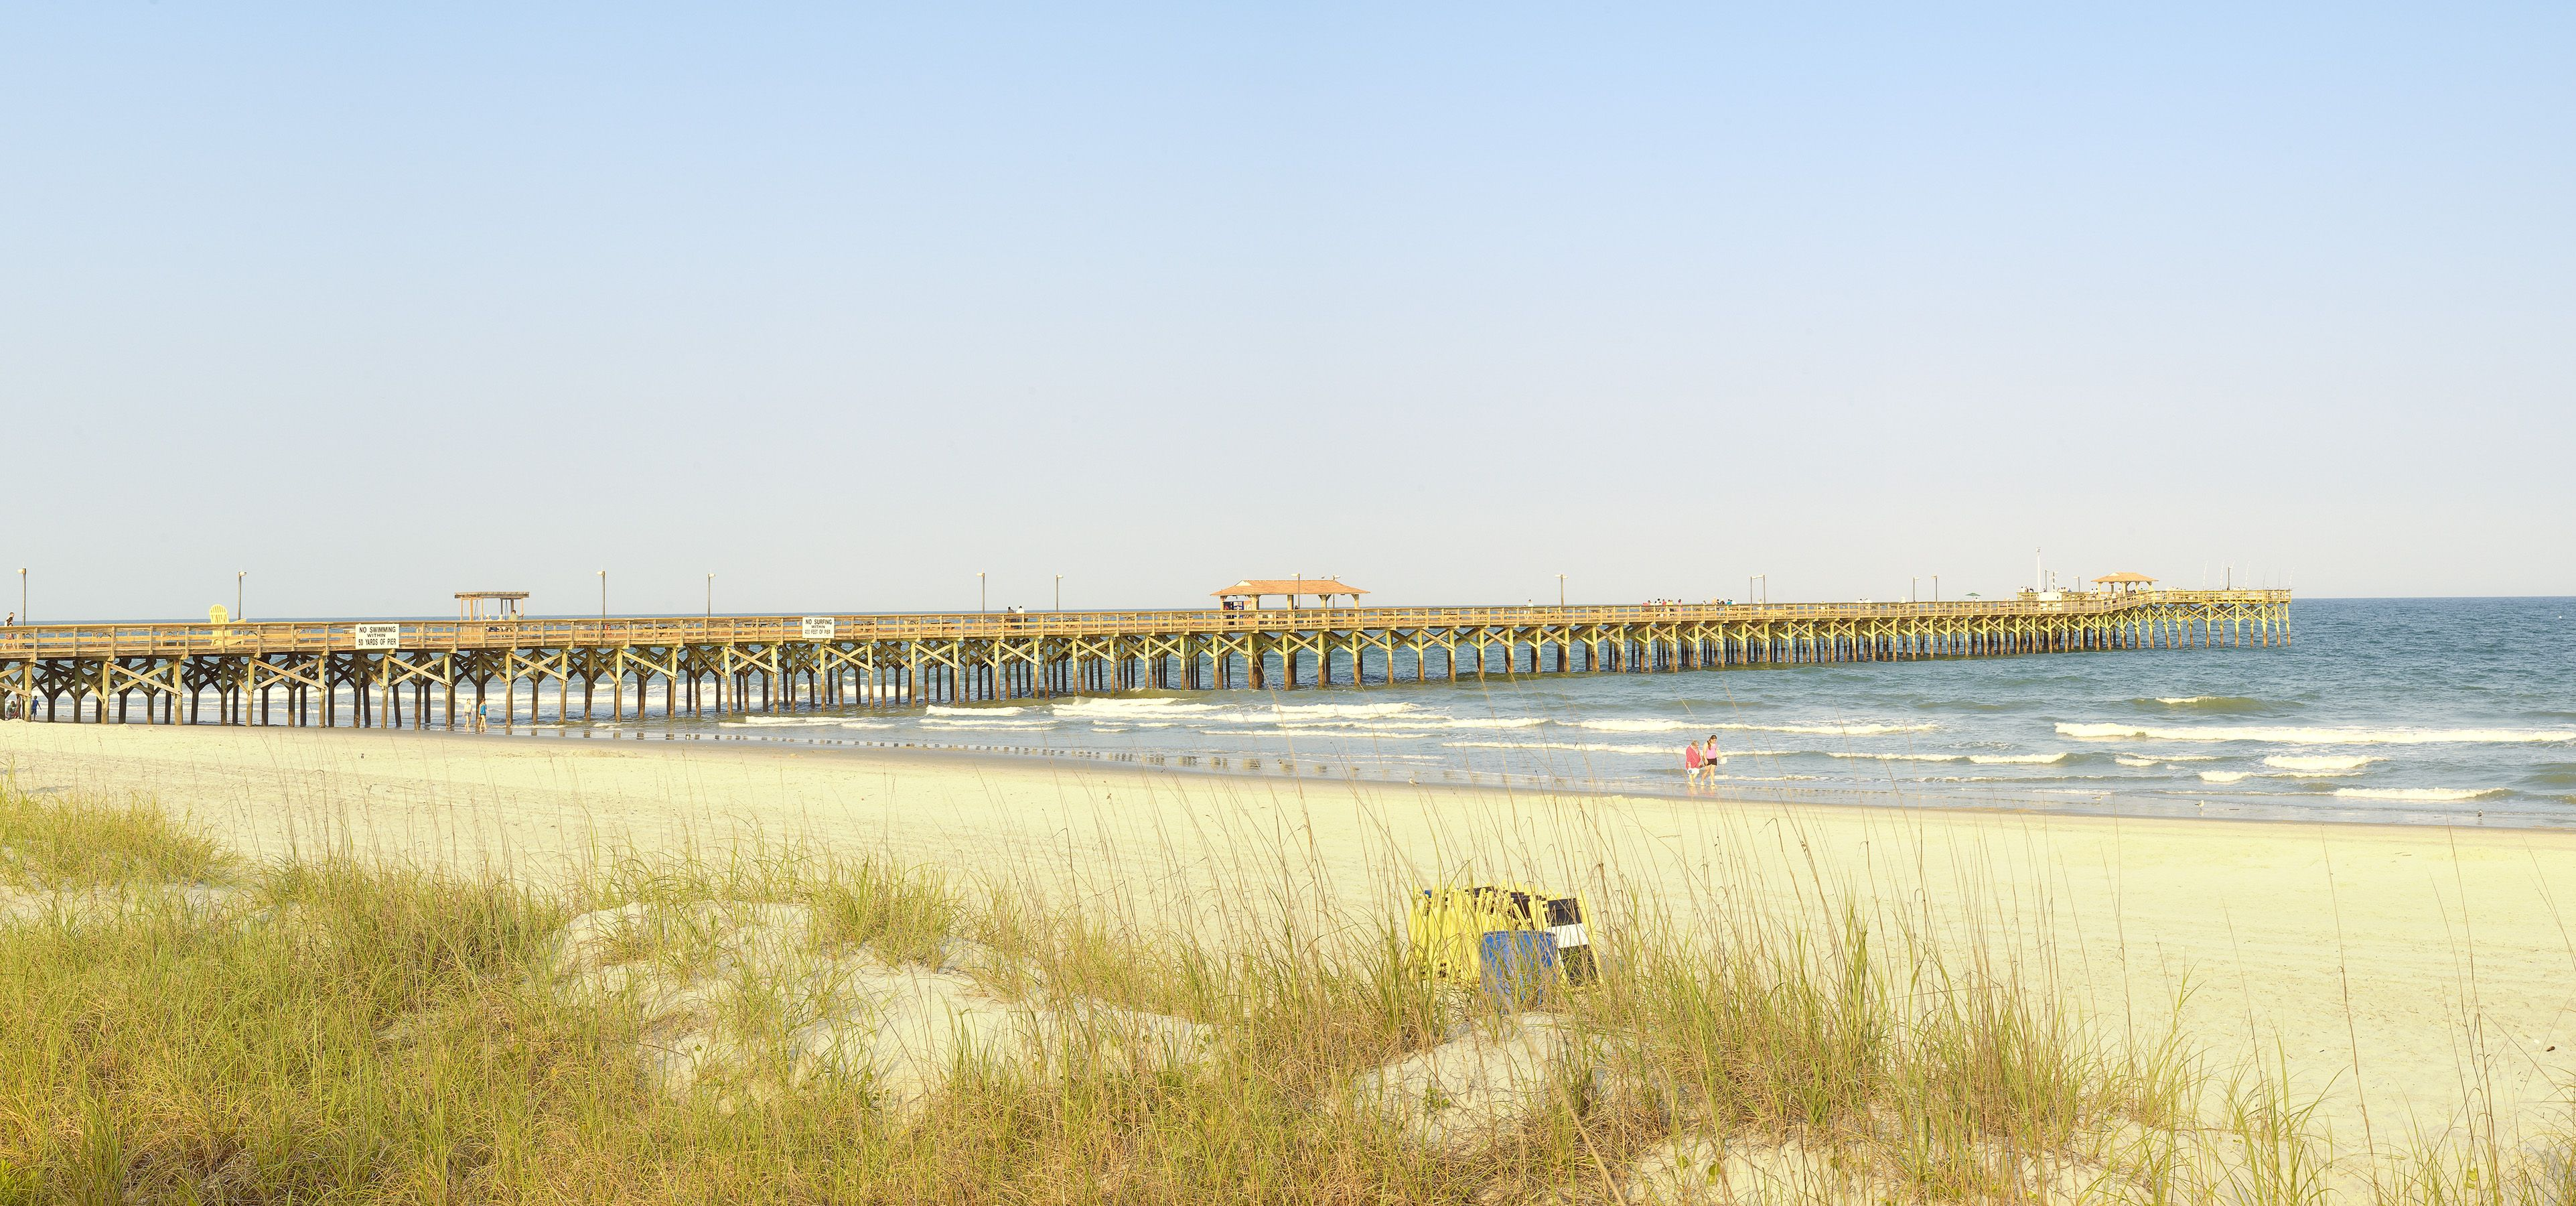 Springmaid Pier Myrtle Beach, SC Open daily from 6am9pm